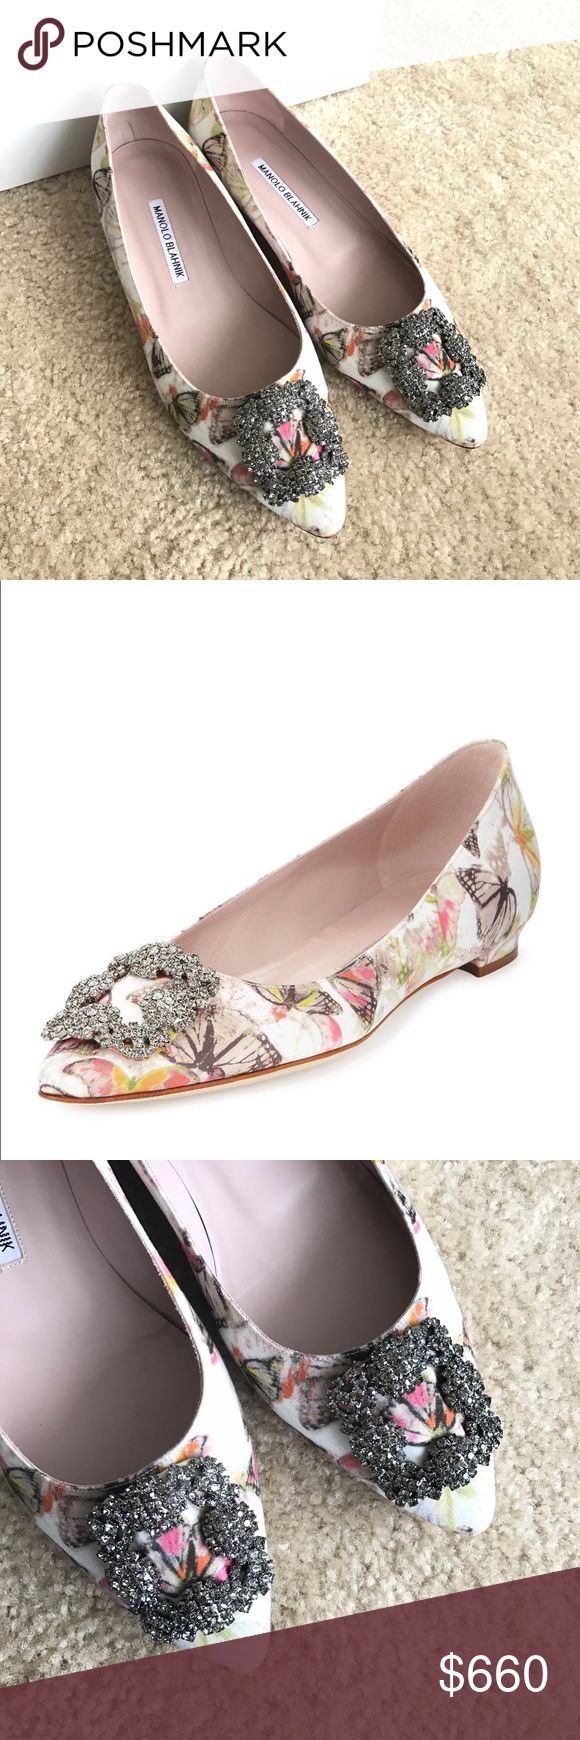 """Manolo Blahnik Hangisi Butterfly-Print Satin Flat NIB Manolo Blahnik Hangisi Butterfly-Print Satin Flat  Size 38.5/8.5. Please know your size before bidding! Guaranteed 100% Authentic. Purchased from NM Last Call. There may be some imperfection since it comes from an outlet. Please see photos for details. Comes with dustbag and shoebox. RETAIL PRICE: $955 + TAX  Details: Manolo Blahnik """"Hangisi"""" flat in butterfly-print satin. 0.5"""" flat heel. Pointed toe. Square crystal buckle. Topstitched…"""